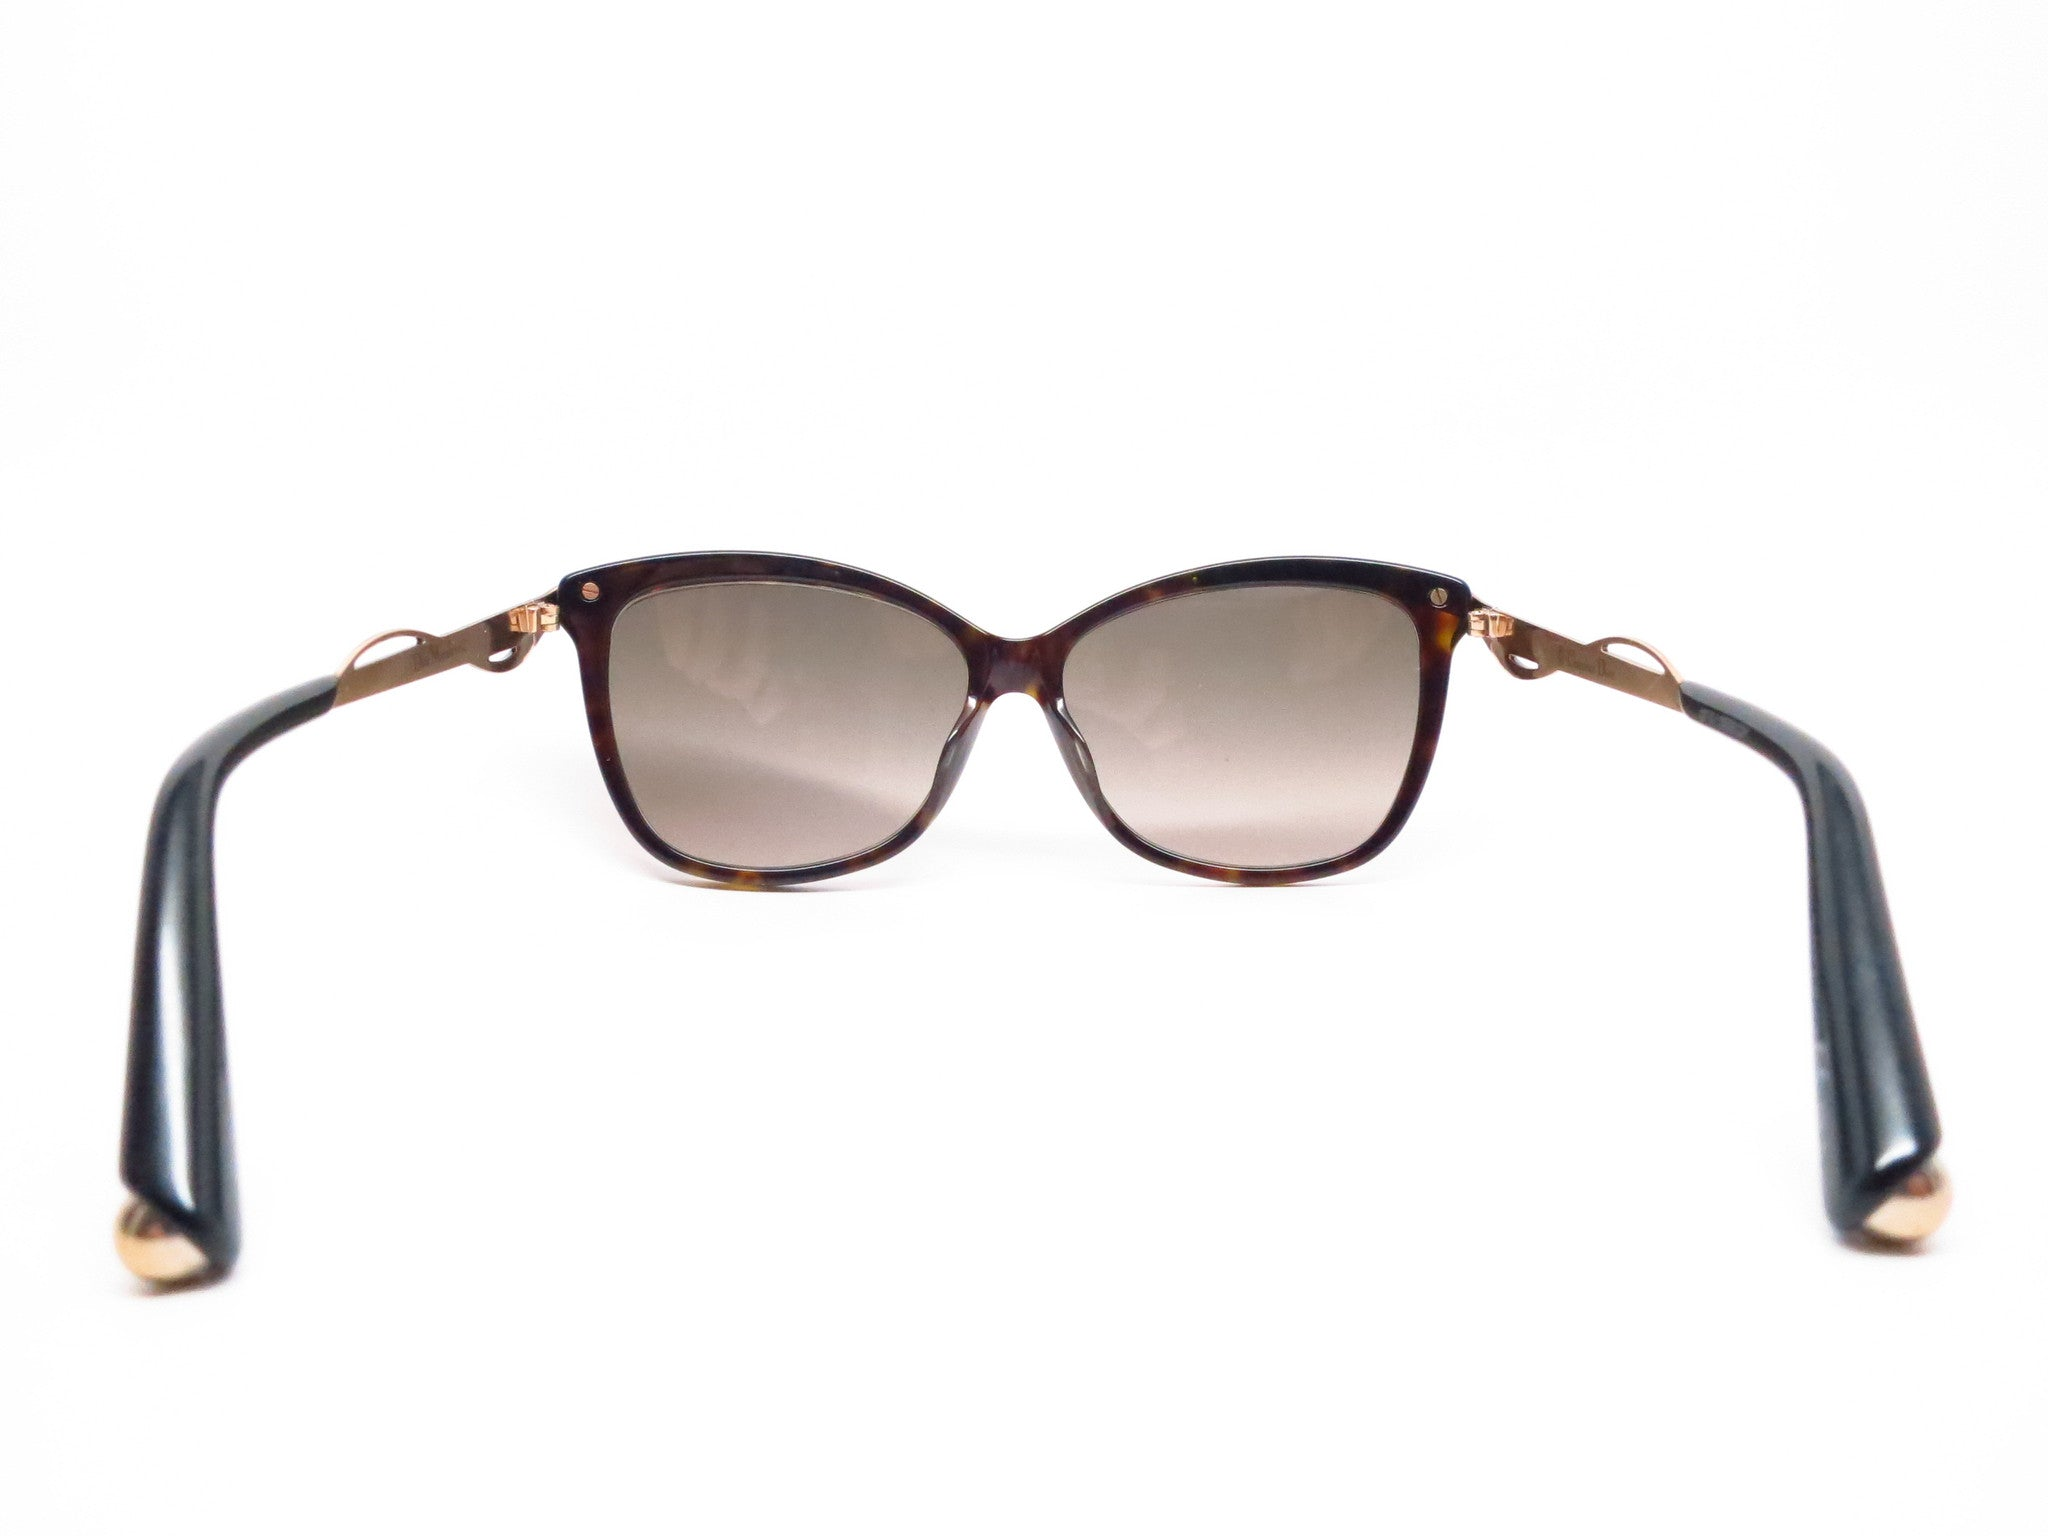 6aff7c3f39 ... Dior Metaleyes 2 6NYHA Dark Havana Sunglasses - Eye Heart Shades - Dior  - Sunglasses ...